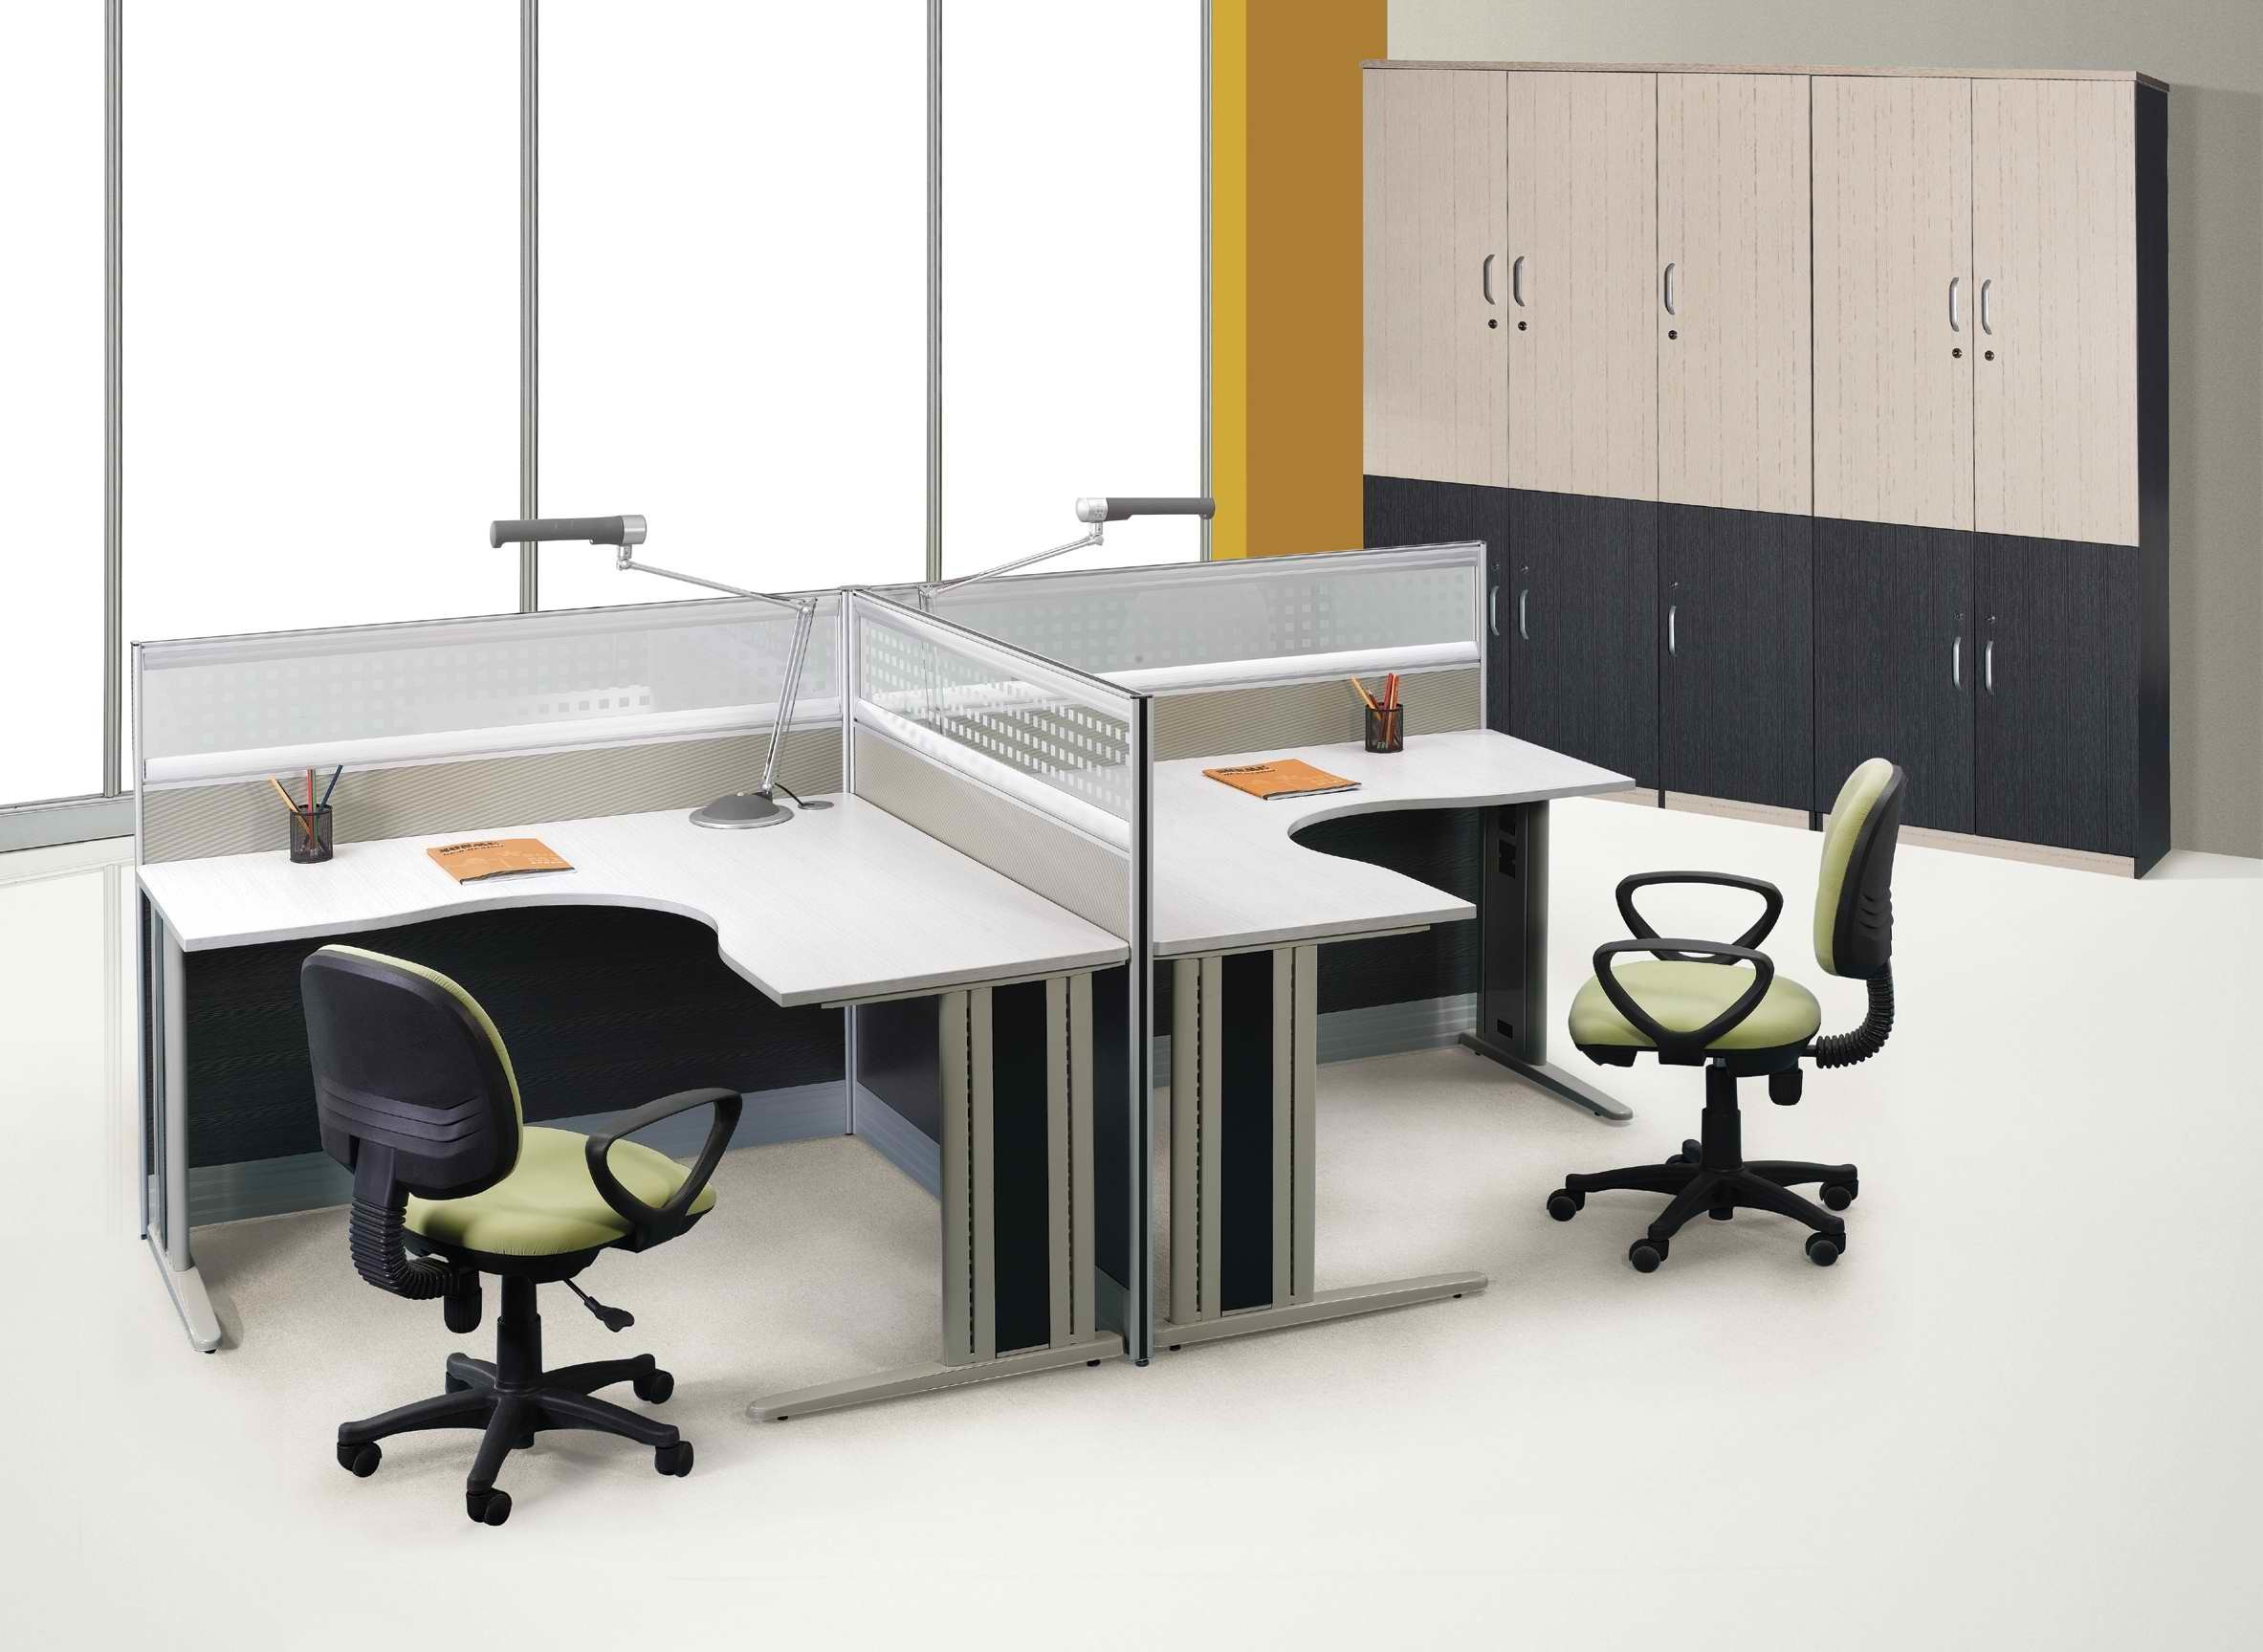 Res: 2366x1727, modular office furniture awesome wallpaper gallery n ng